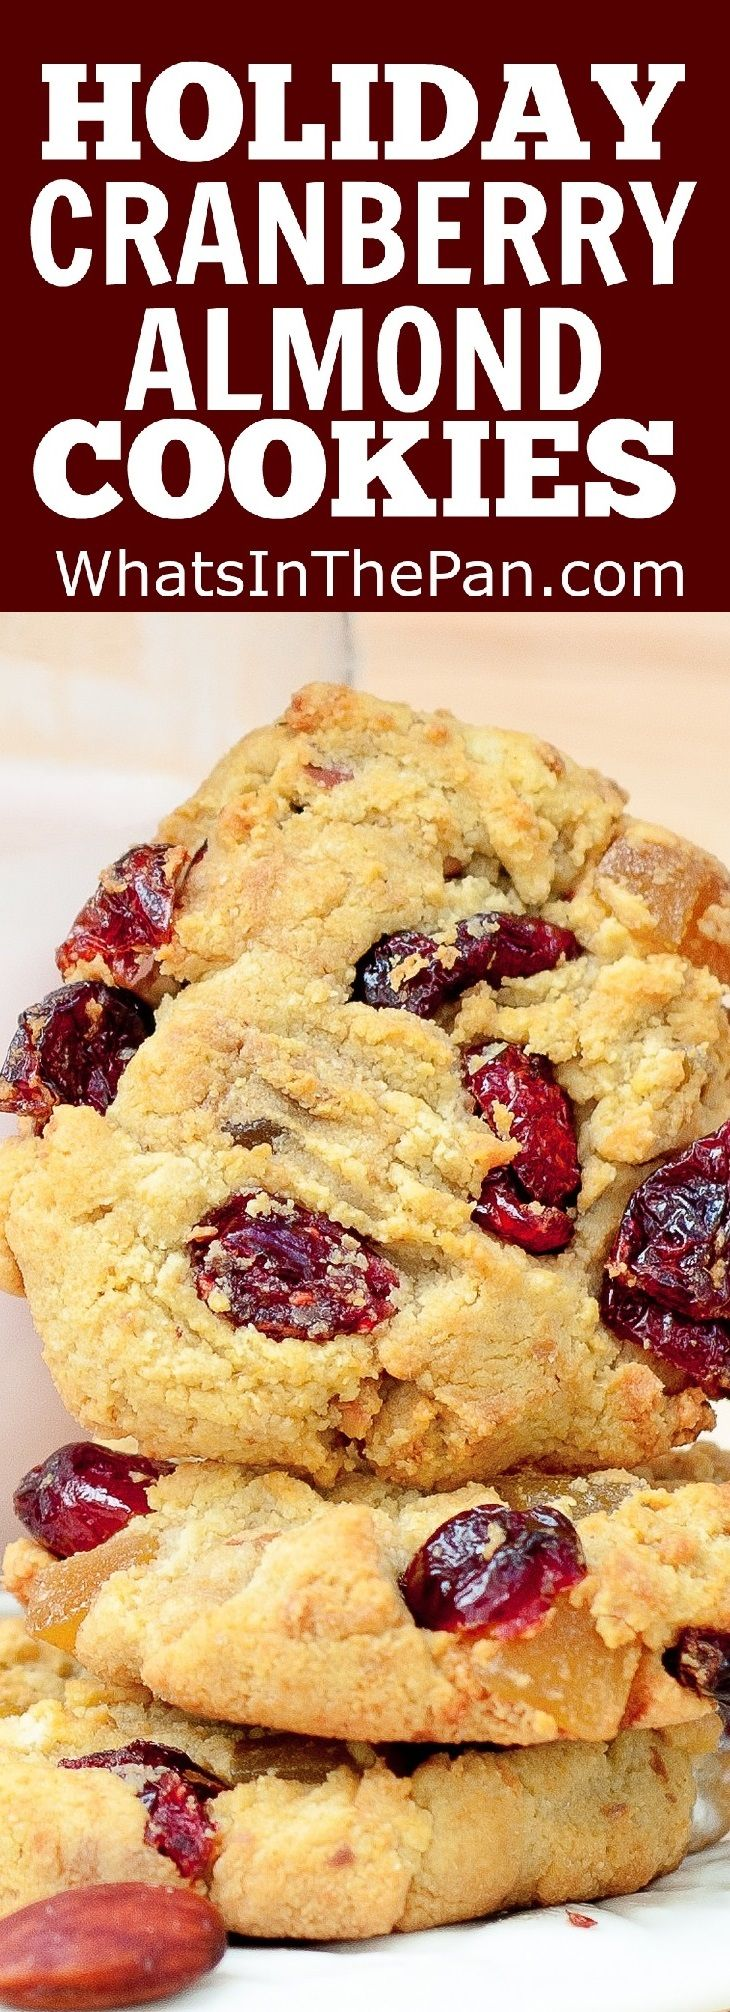 Holiday Cranberry Almond Cookies #Christmas #Holidays #baking